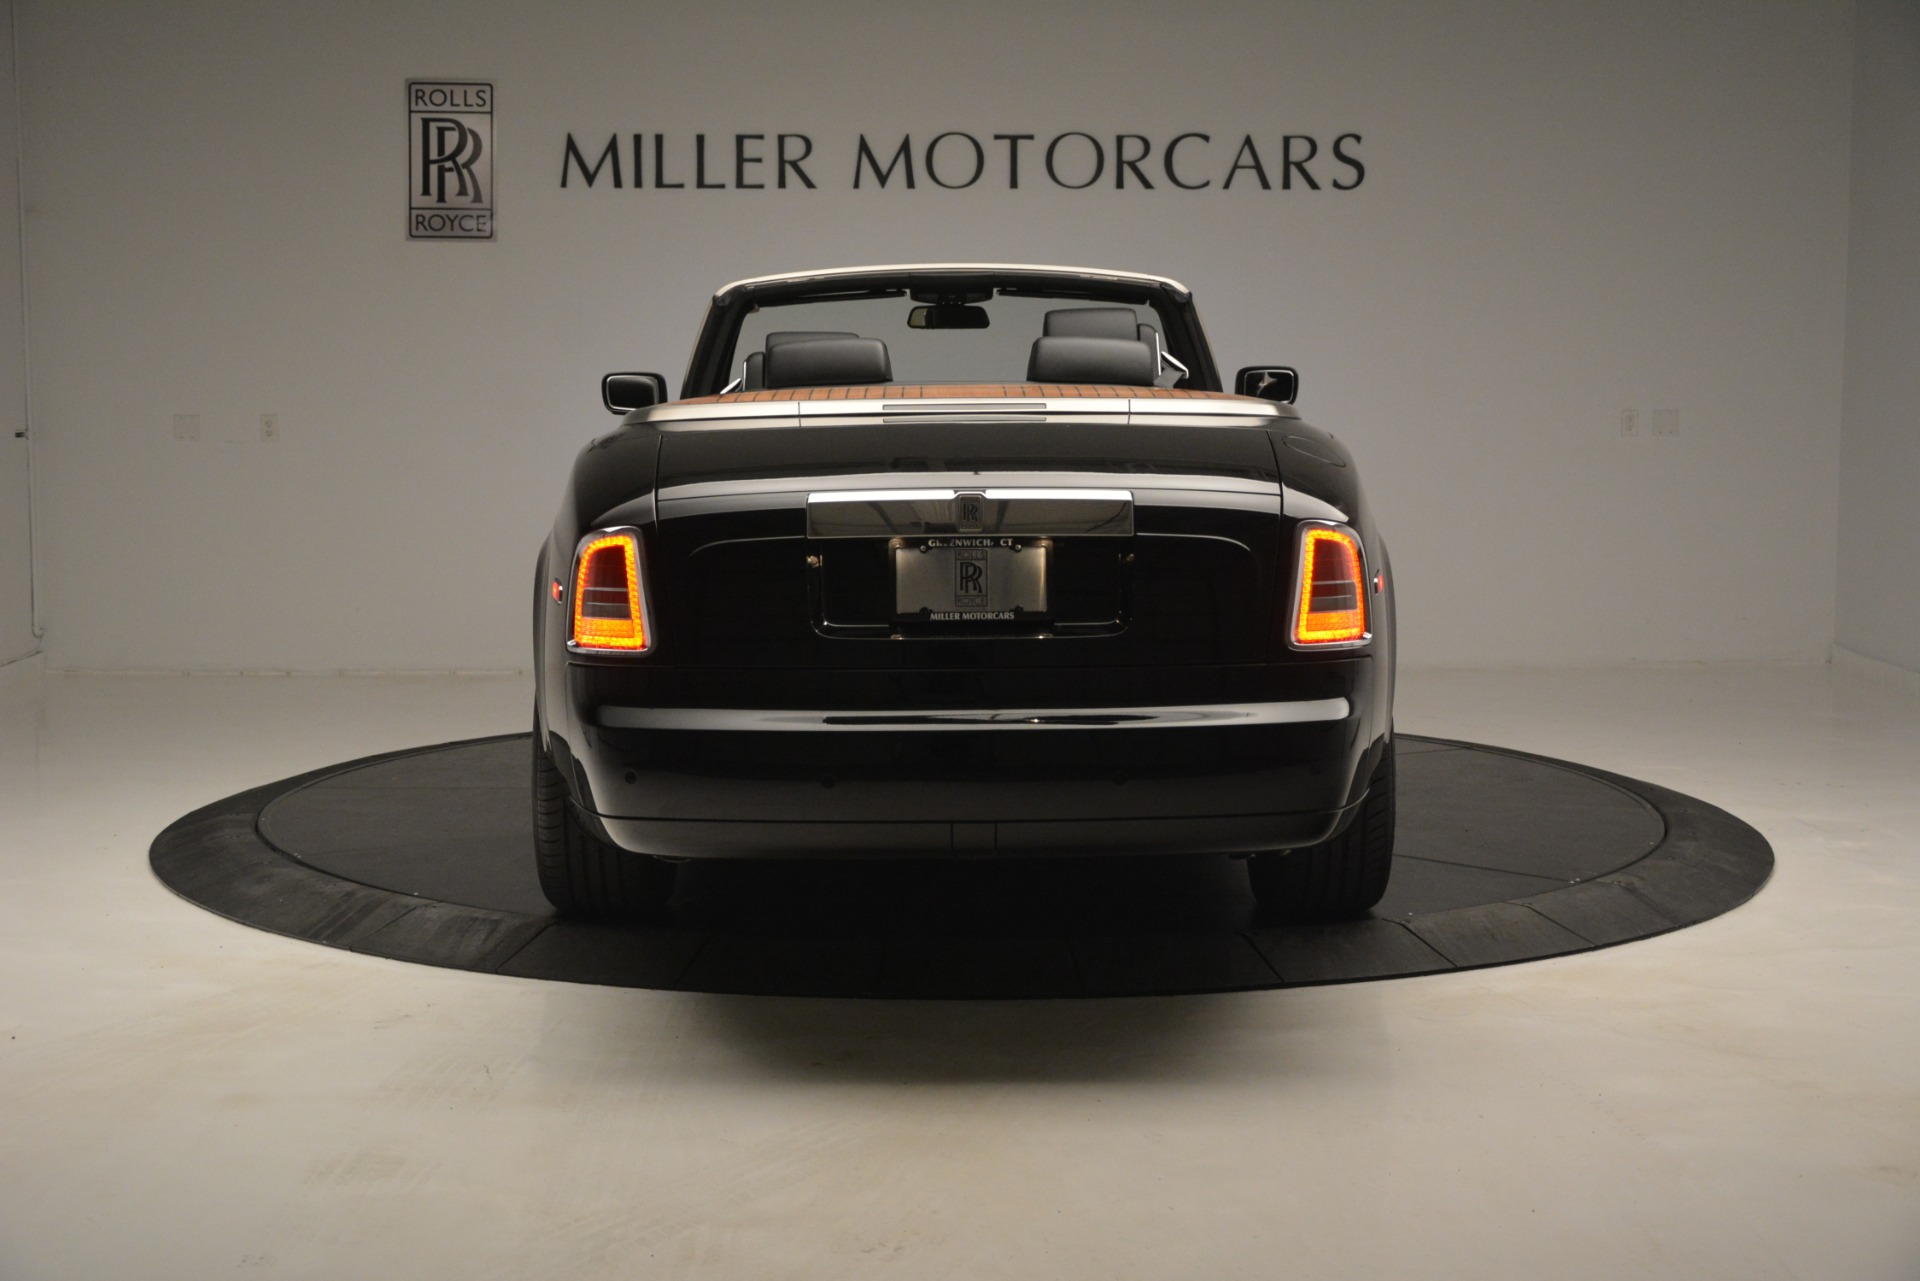 Used 2008 Rolls-Royce Phantom Drophead Coupe  For Sale In Greenwich, CT 3000_p9